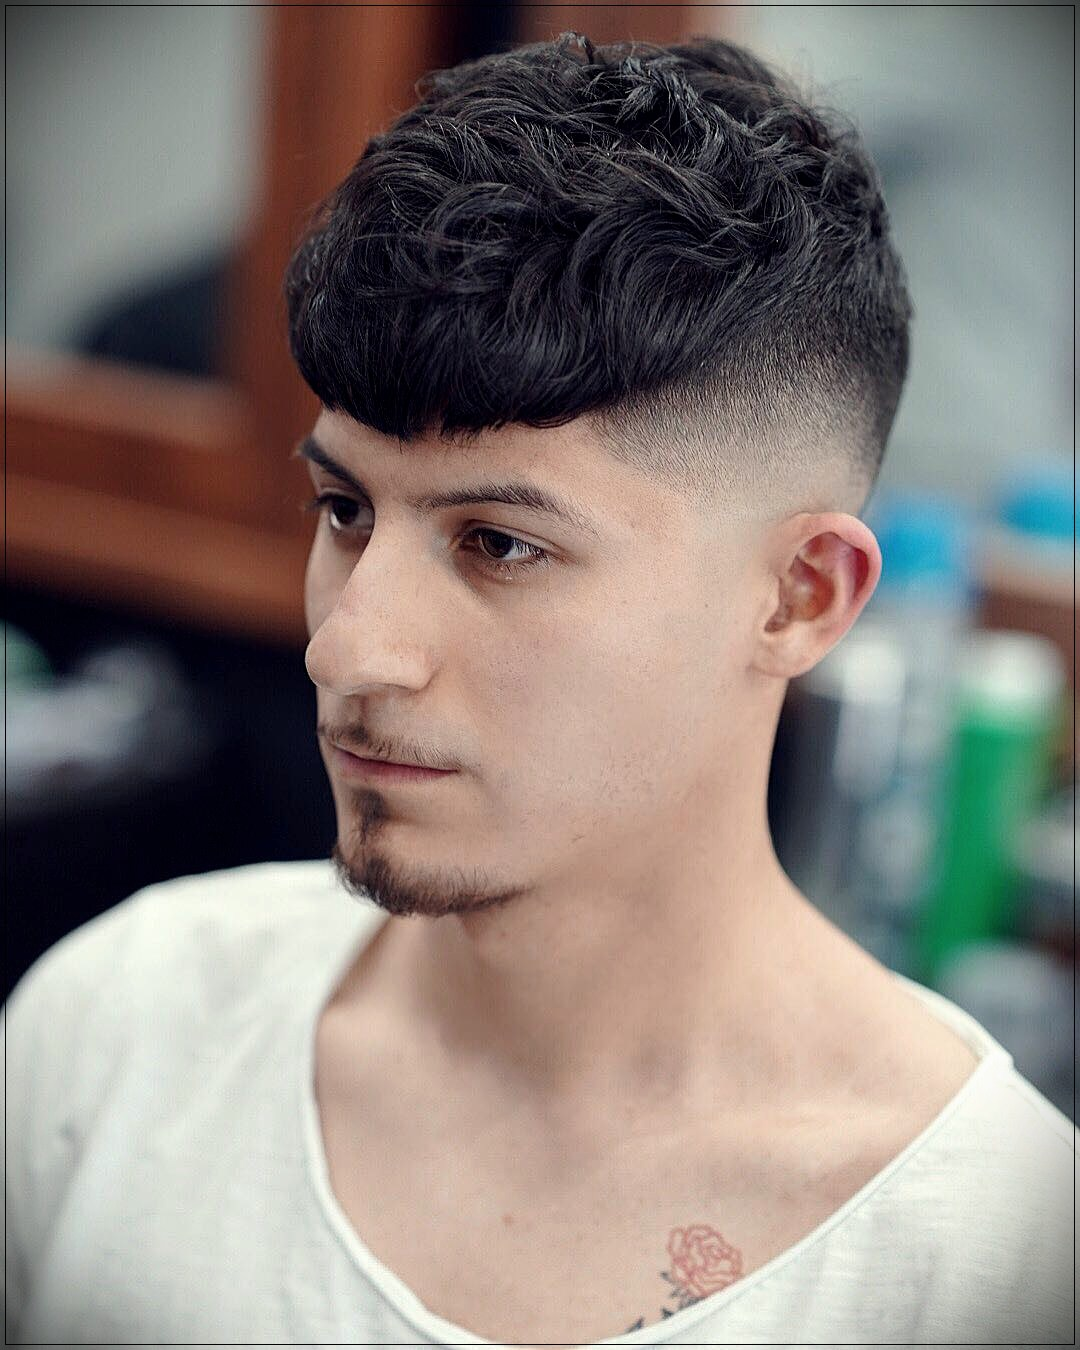 Short haircuts for men in 2018 18 - Sport these Short Haircuts for men in 2018